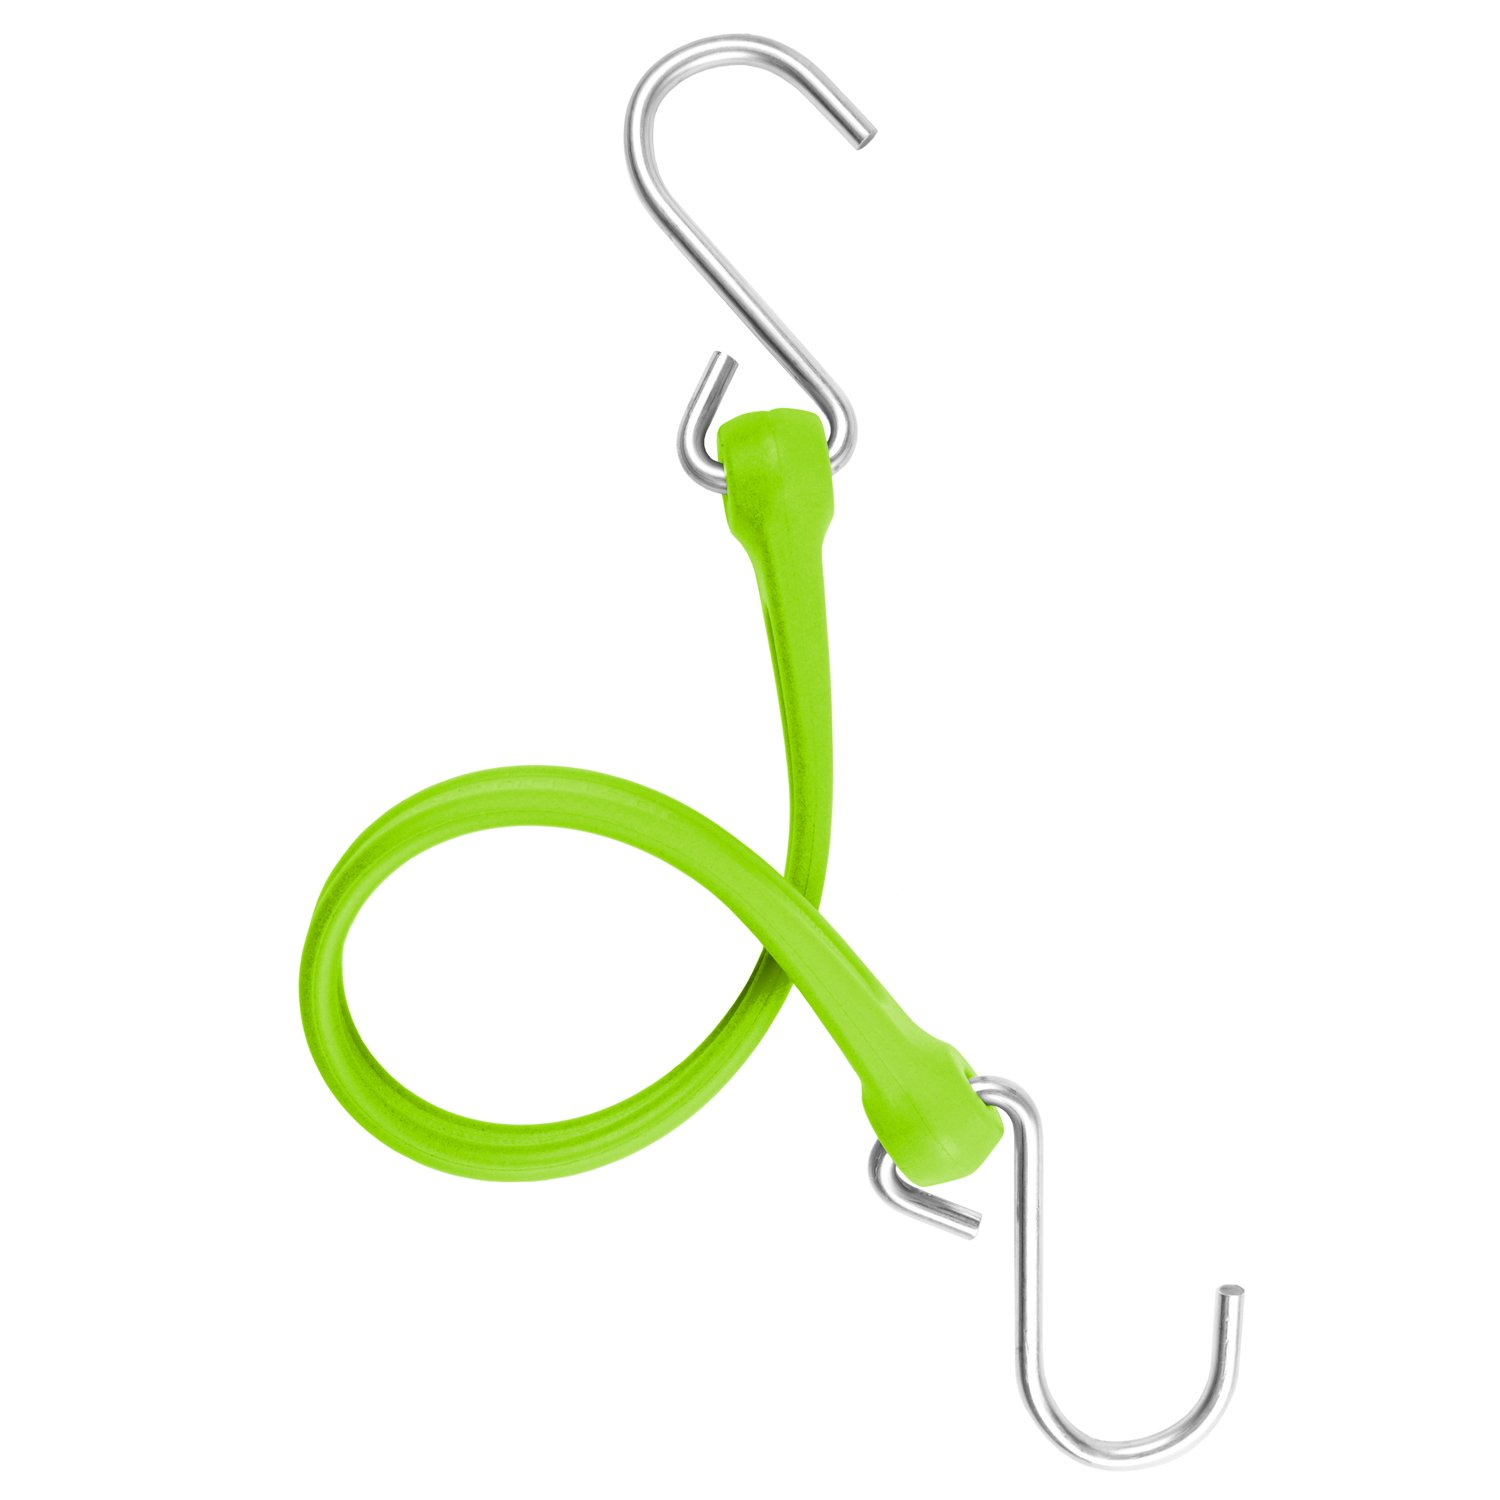 The Perfect Bungee by BihlerFlex, PB18G4PKP Standard Duty Strap with Galvanized Hook, 18'', Safety Green, 4-Pack